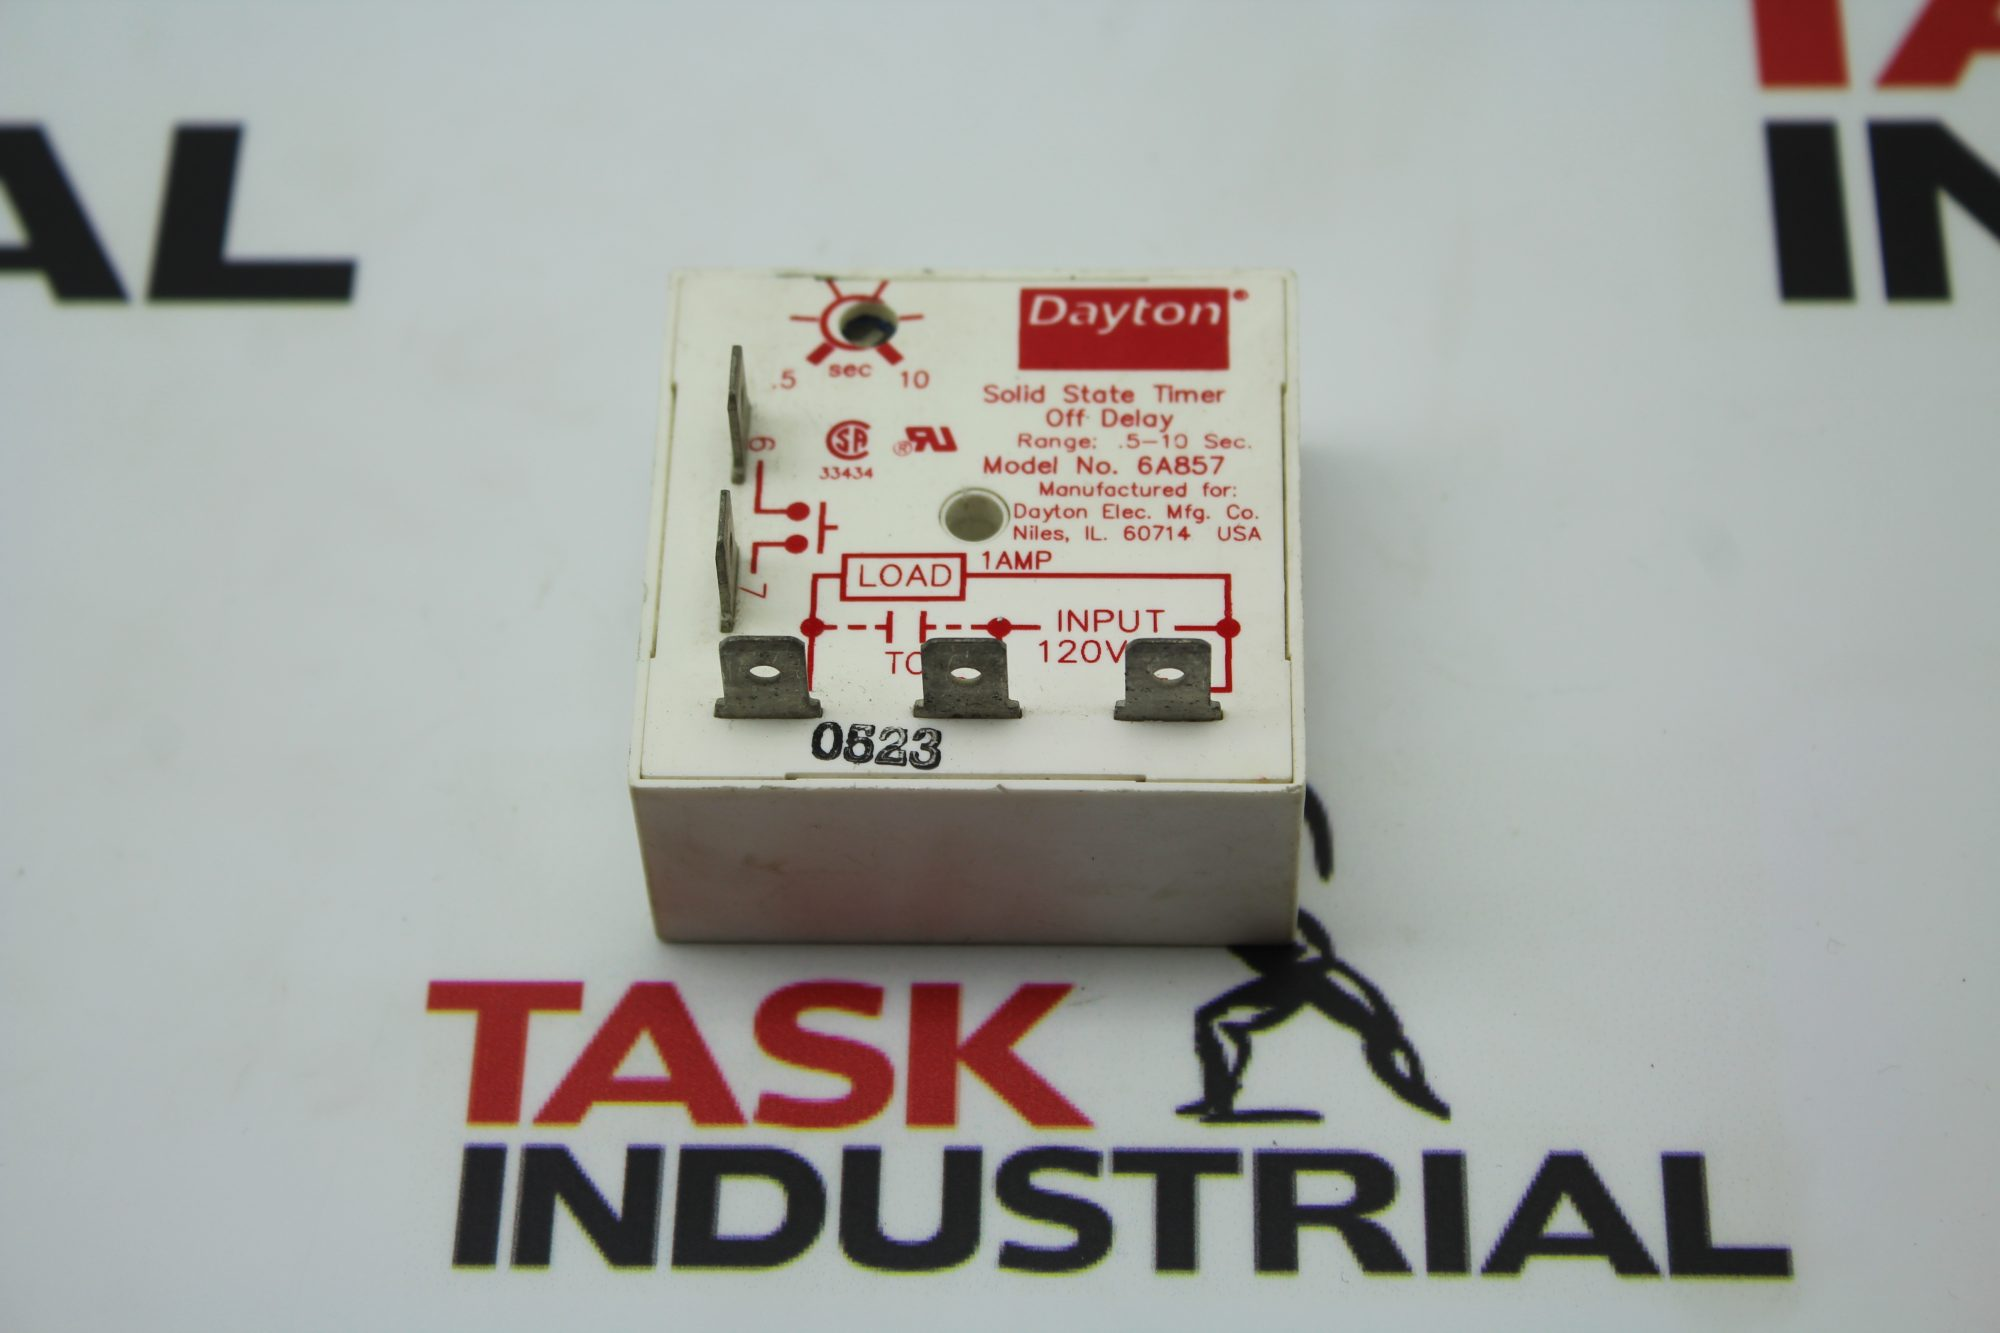 Dayton Solid State Timer Off Delay Model No. 6A857